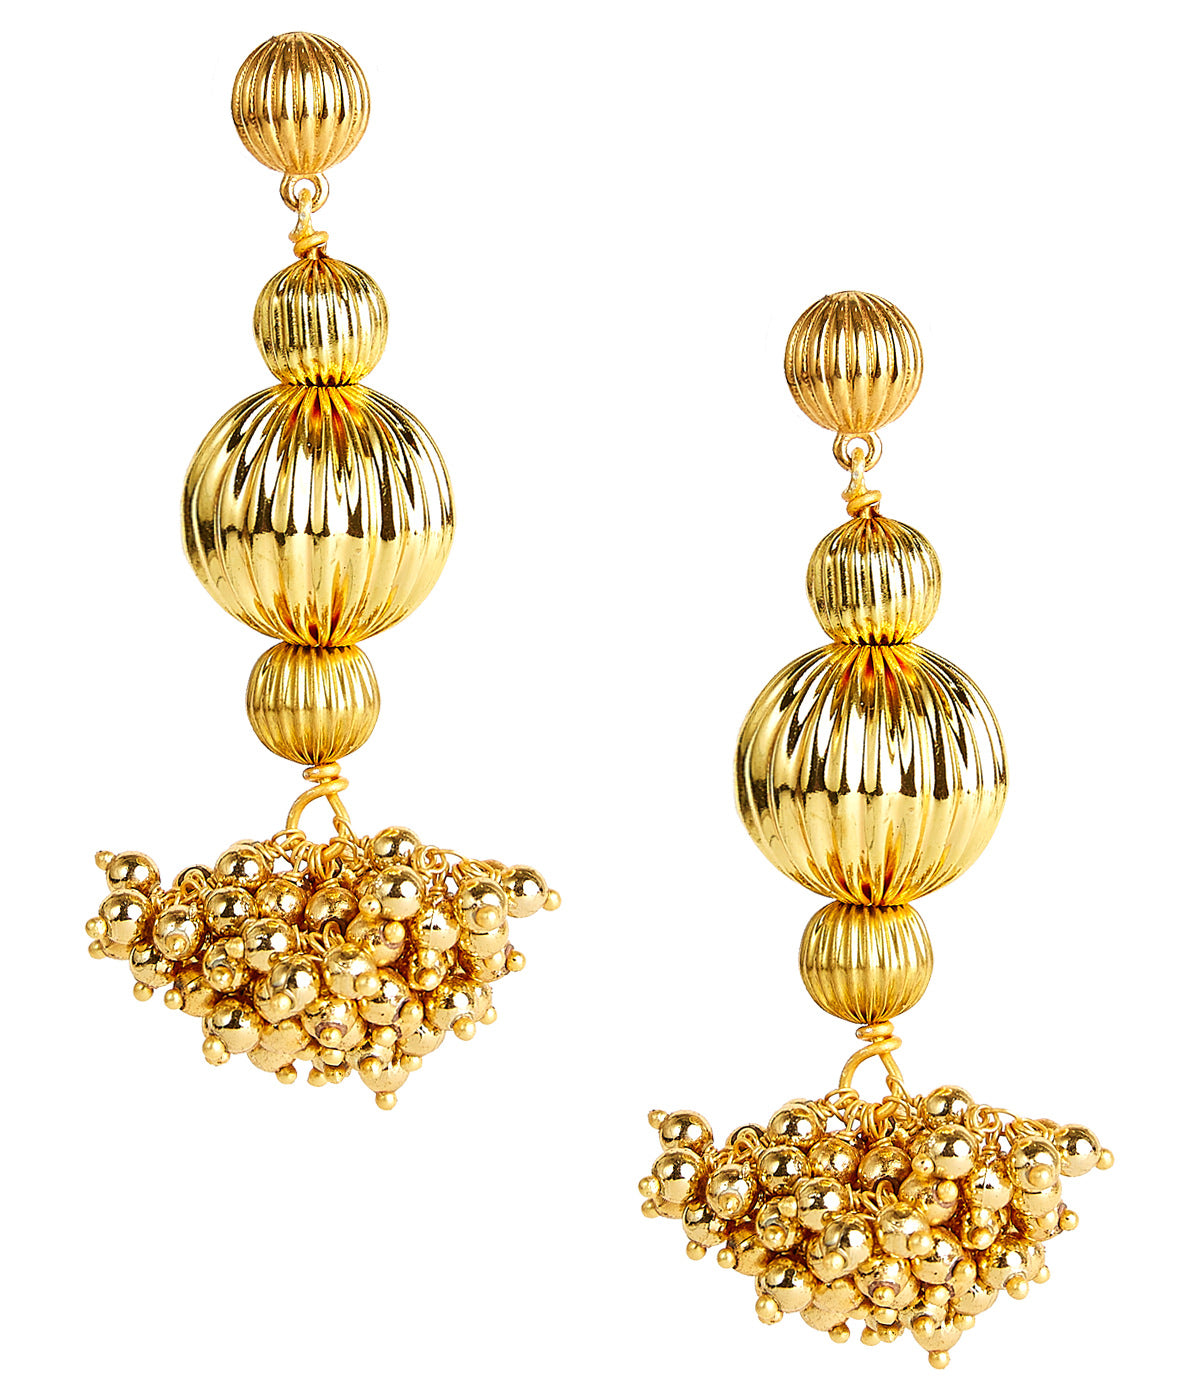 Lisi Lerch Sabrina Earring